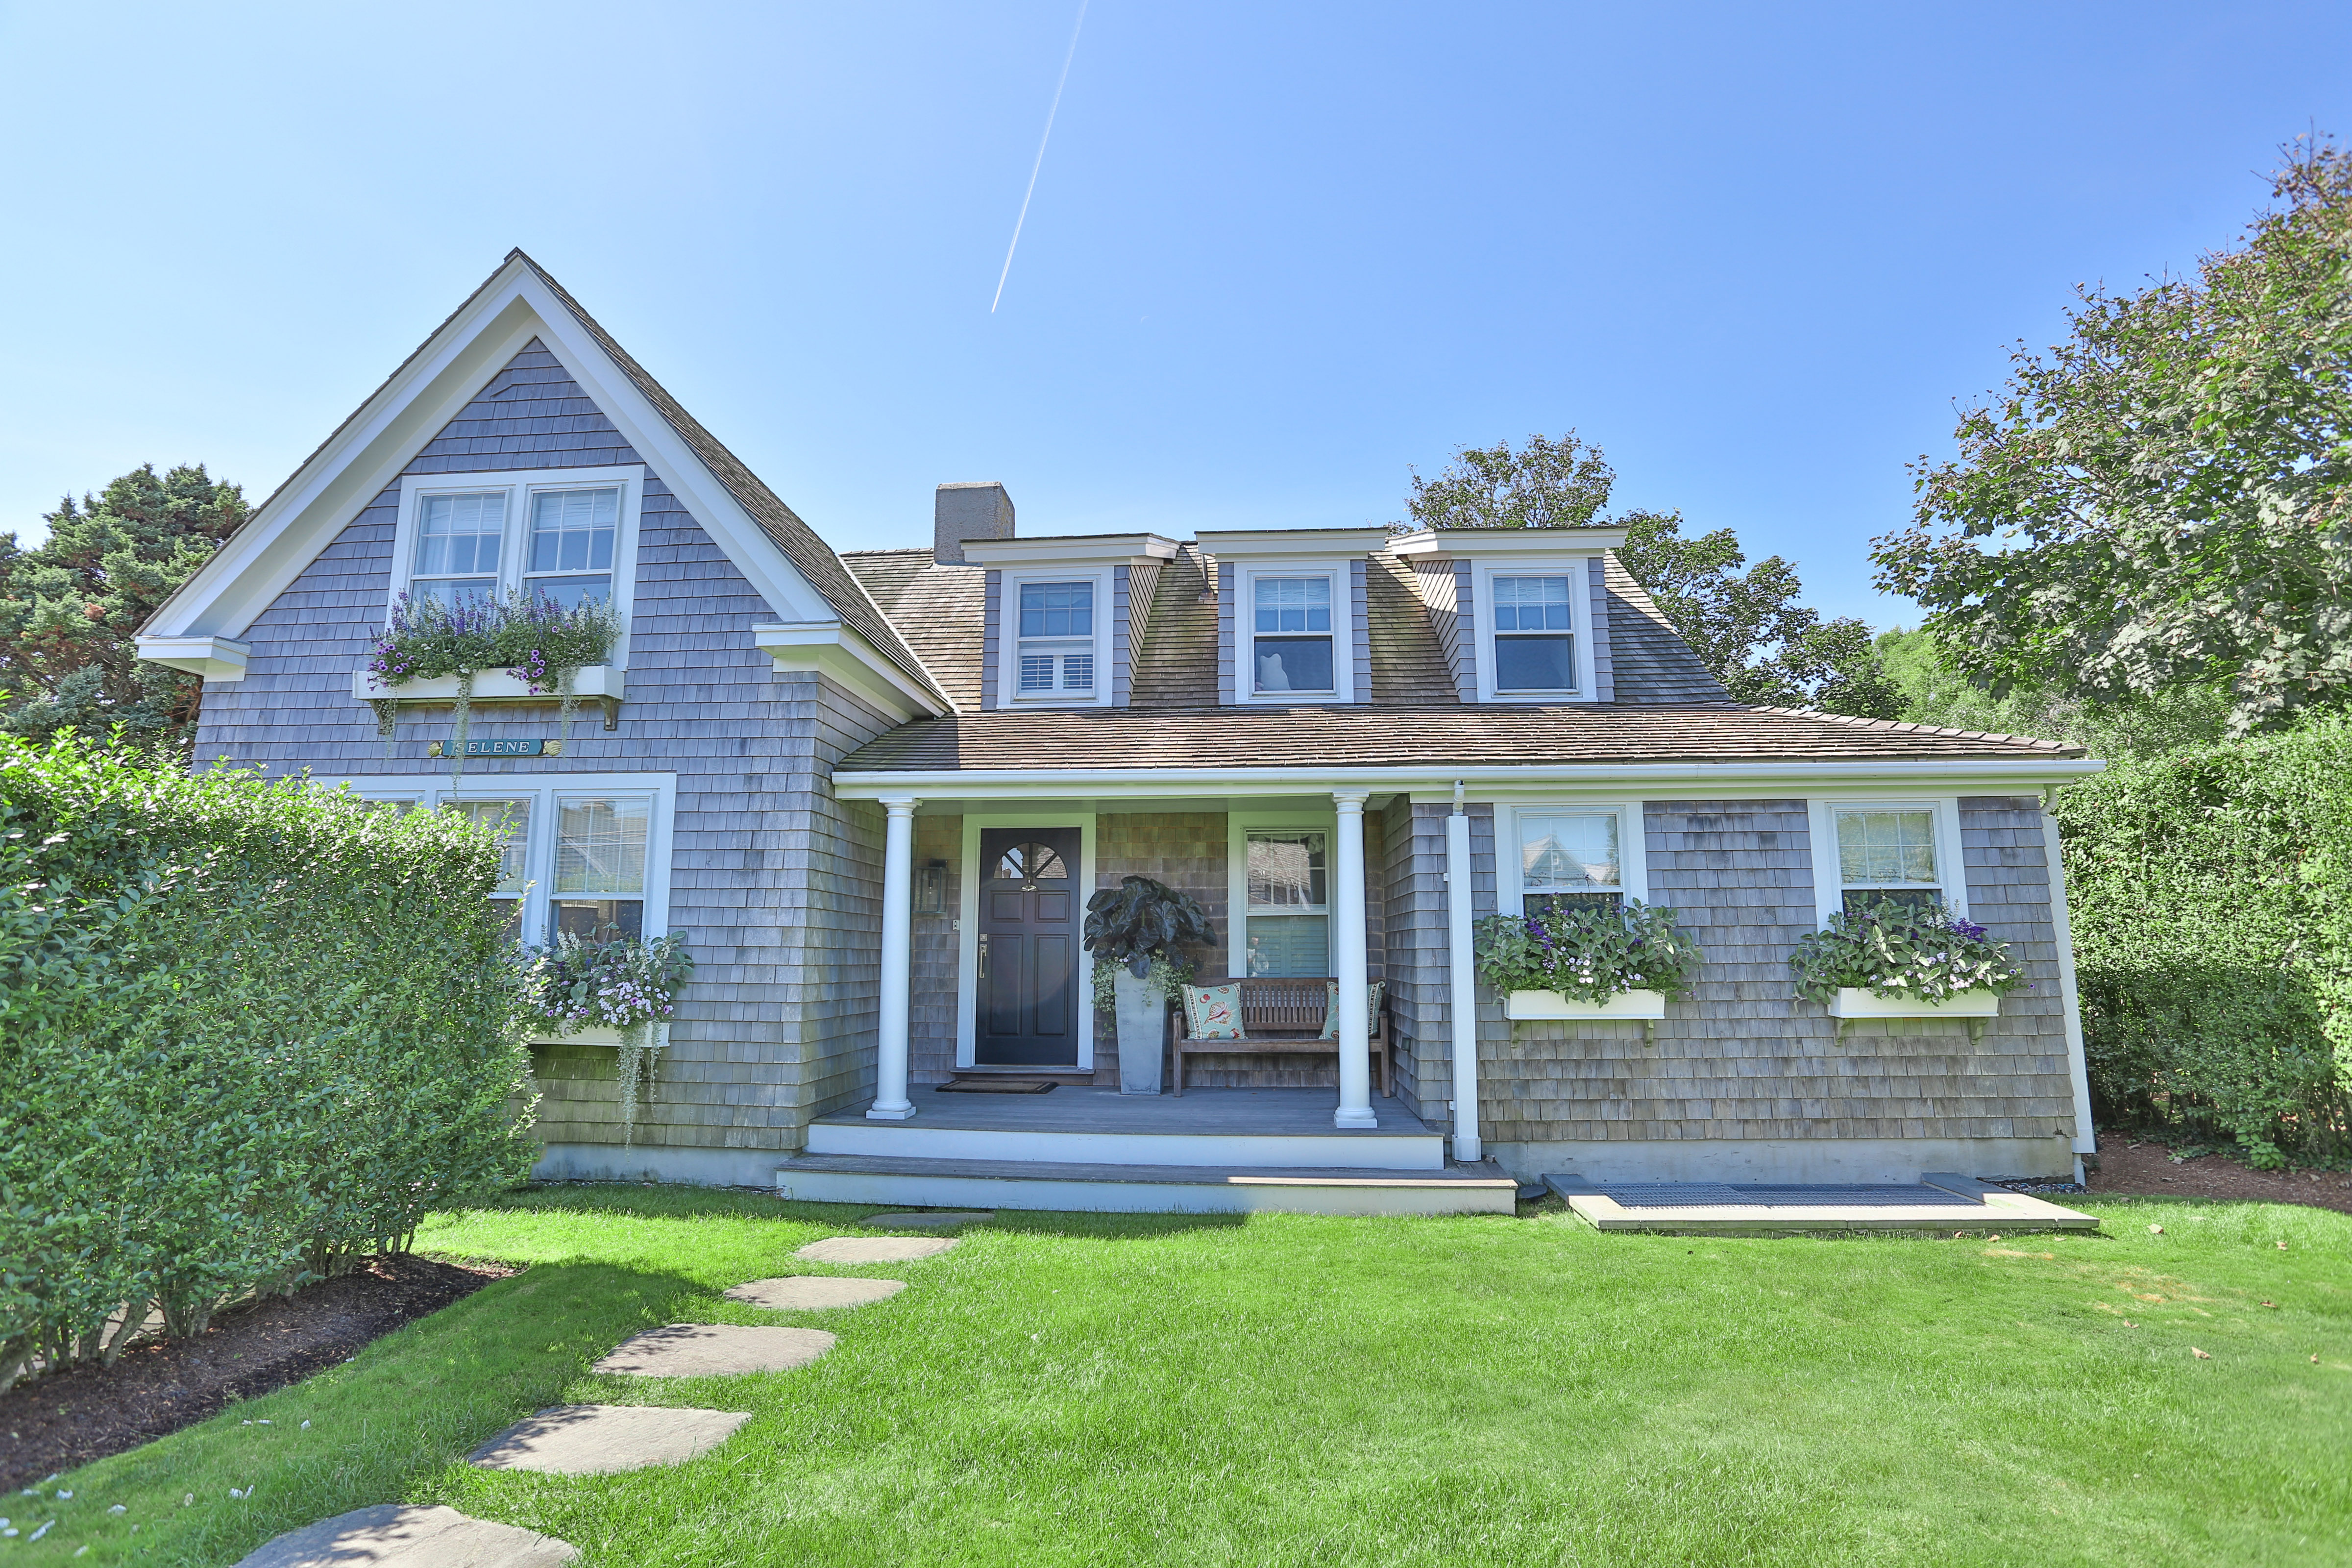 42 Shell Street, Nantucket, MA, USA|Sconset | sale